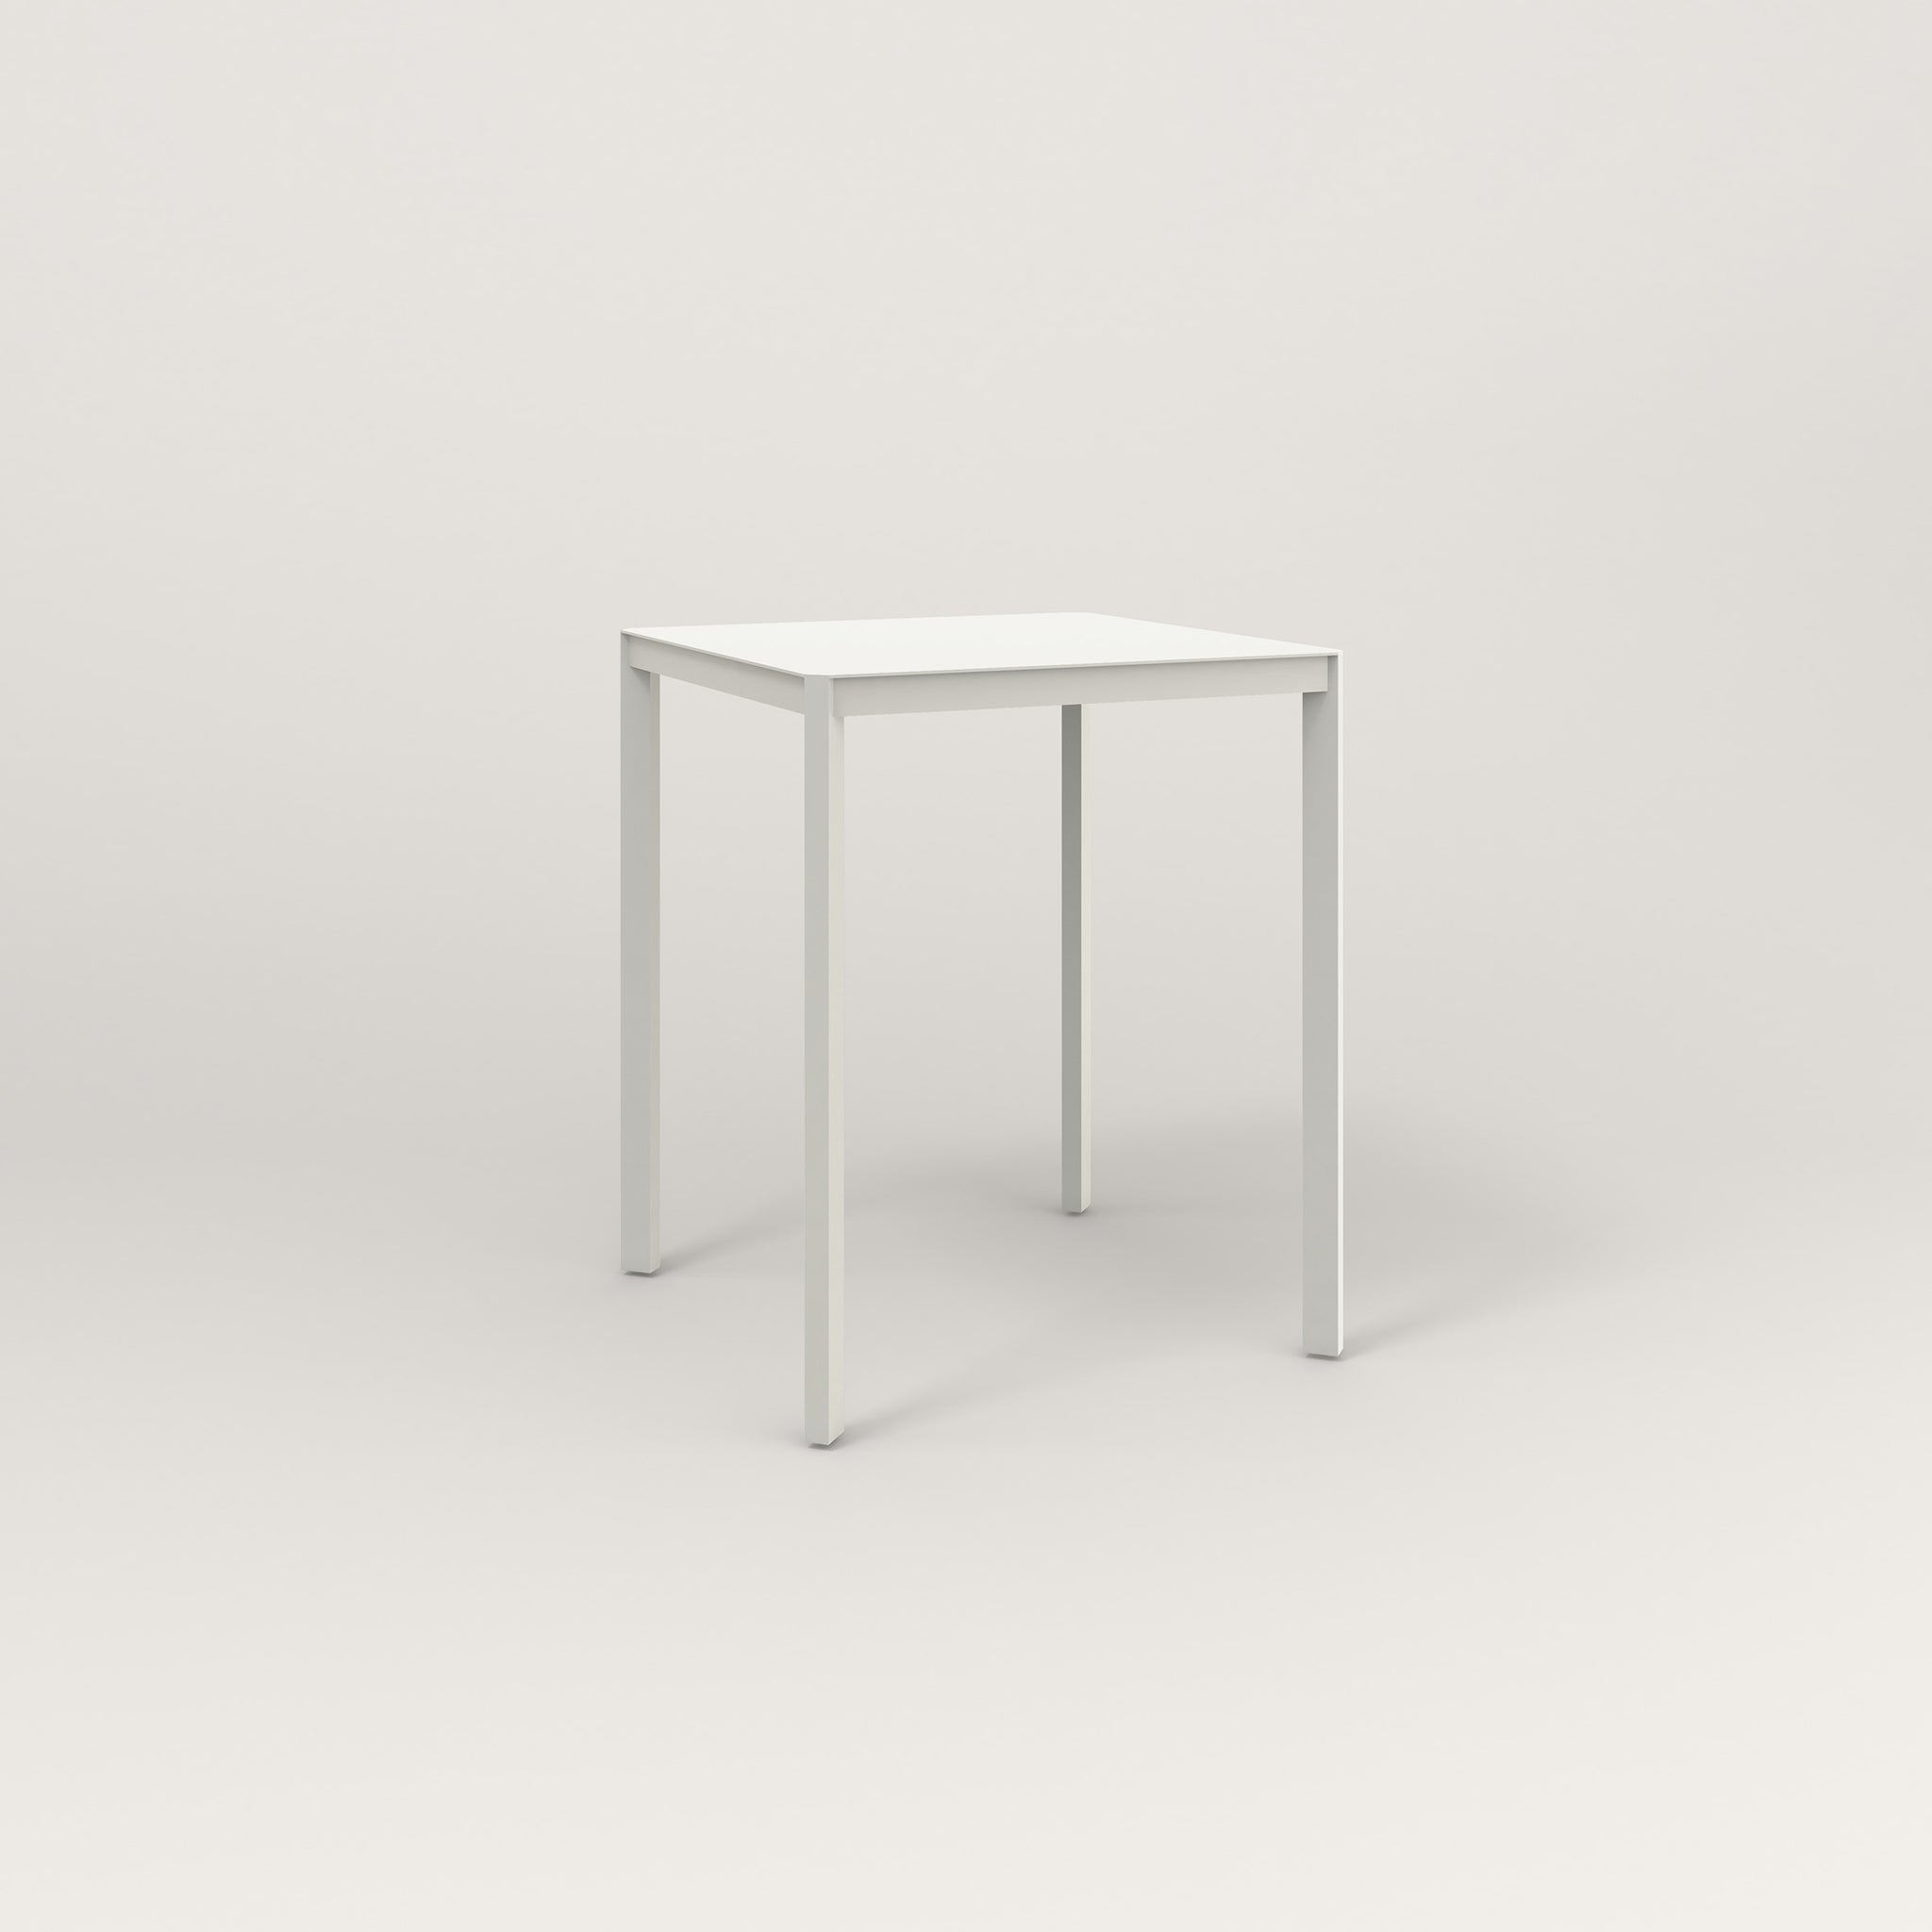 RAD Solid Square Cafe Table, in solid steel and white powder coat.